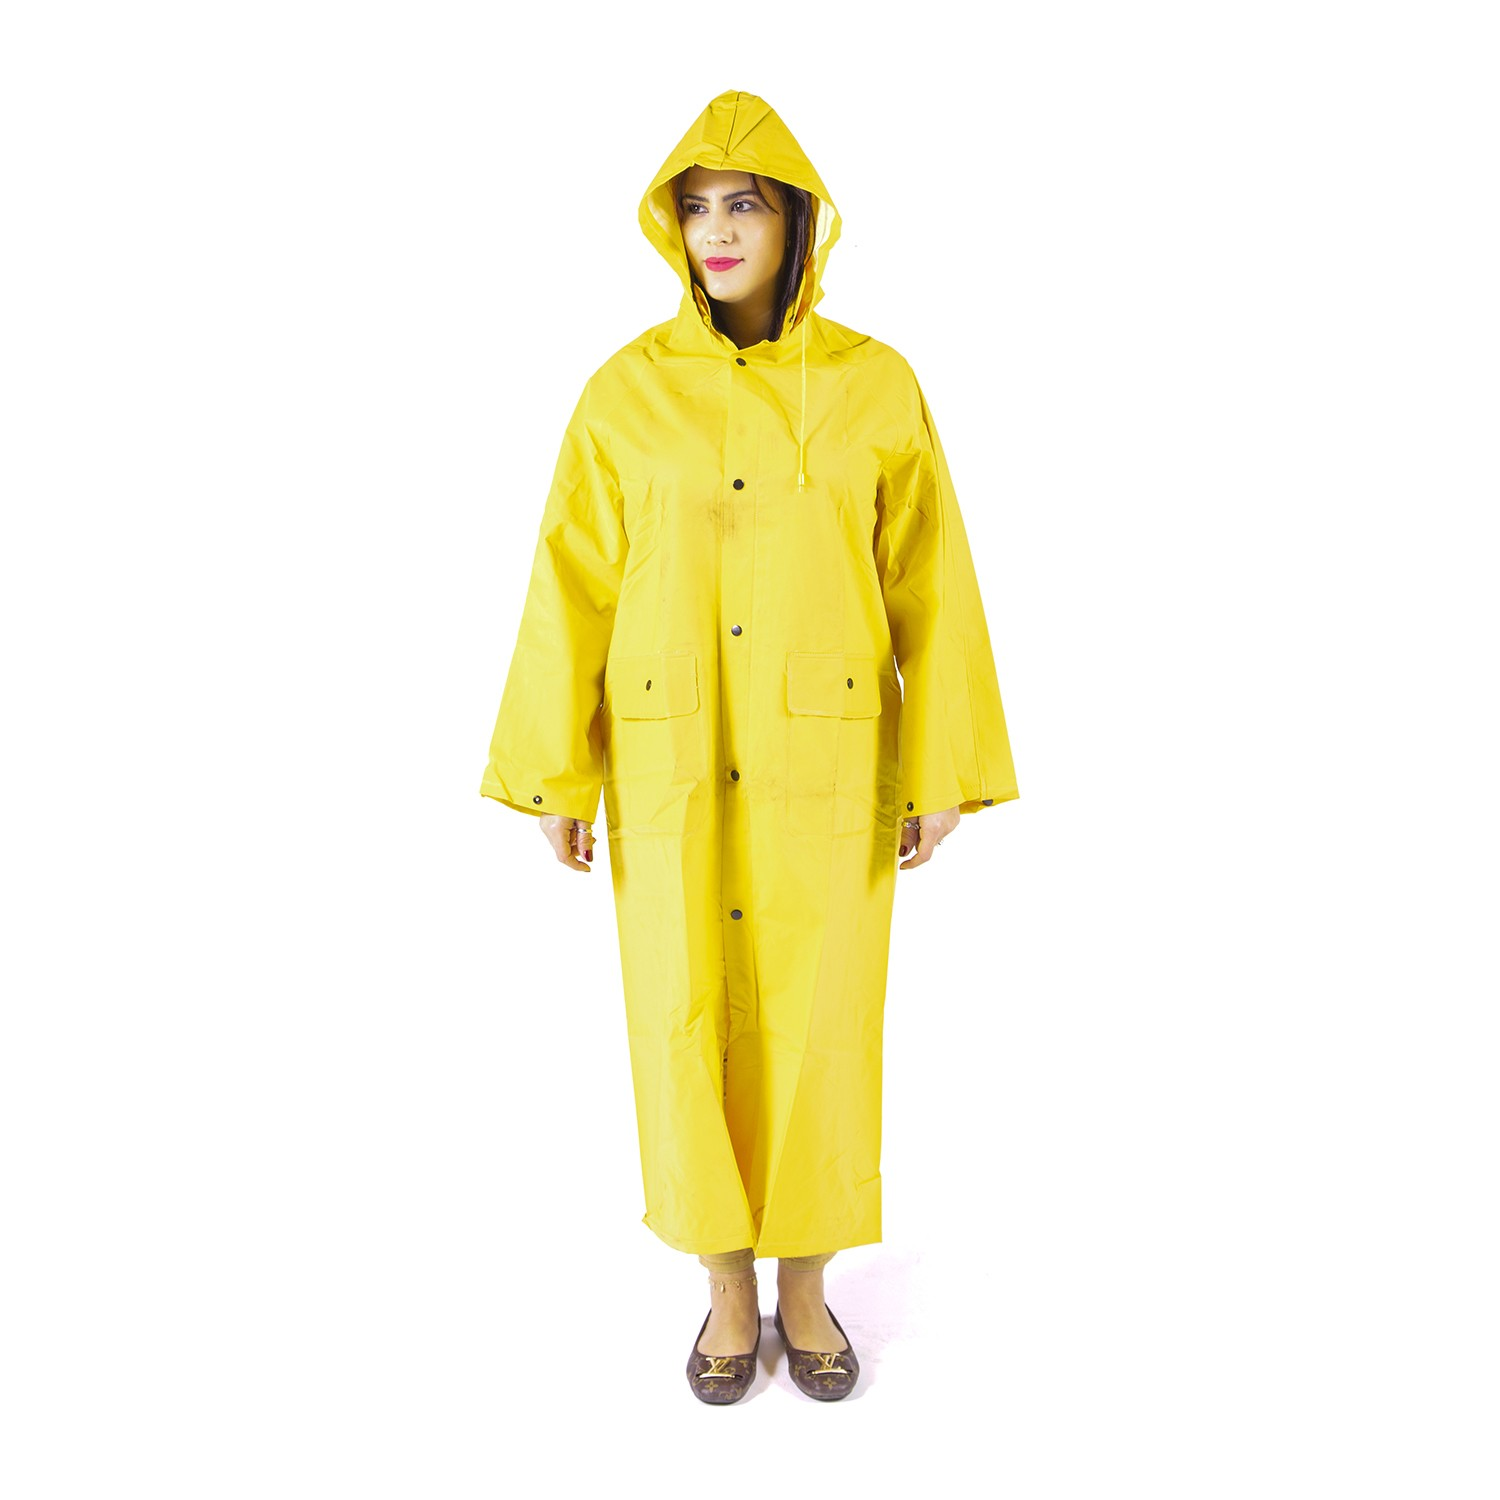 TOTALPACK® 2 Piece Economy Rain Suit Yellow Small 1 Set